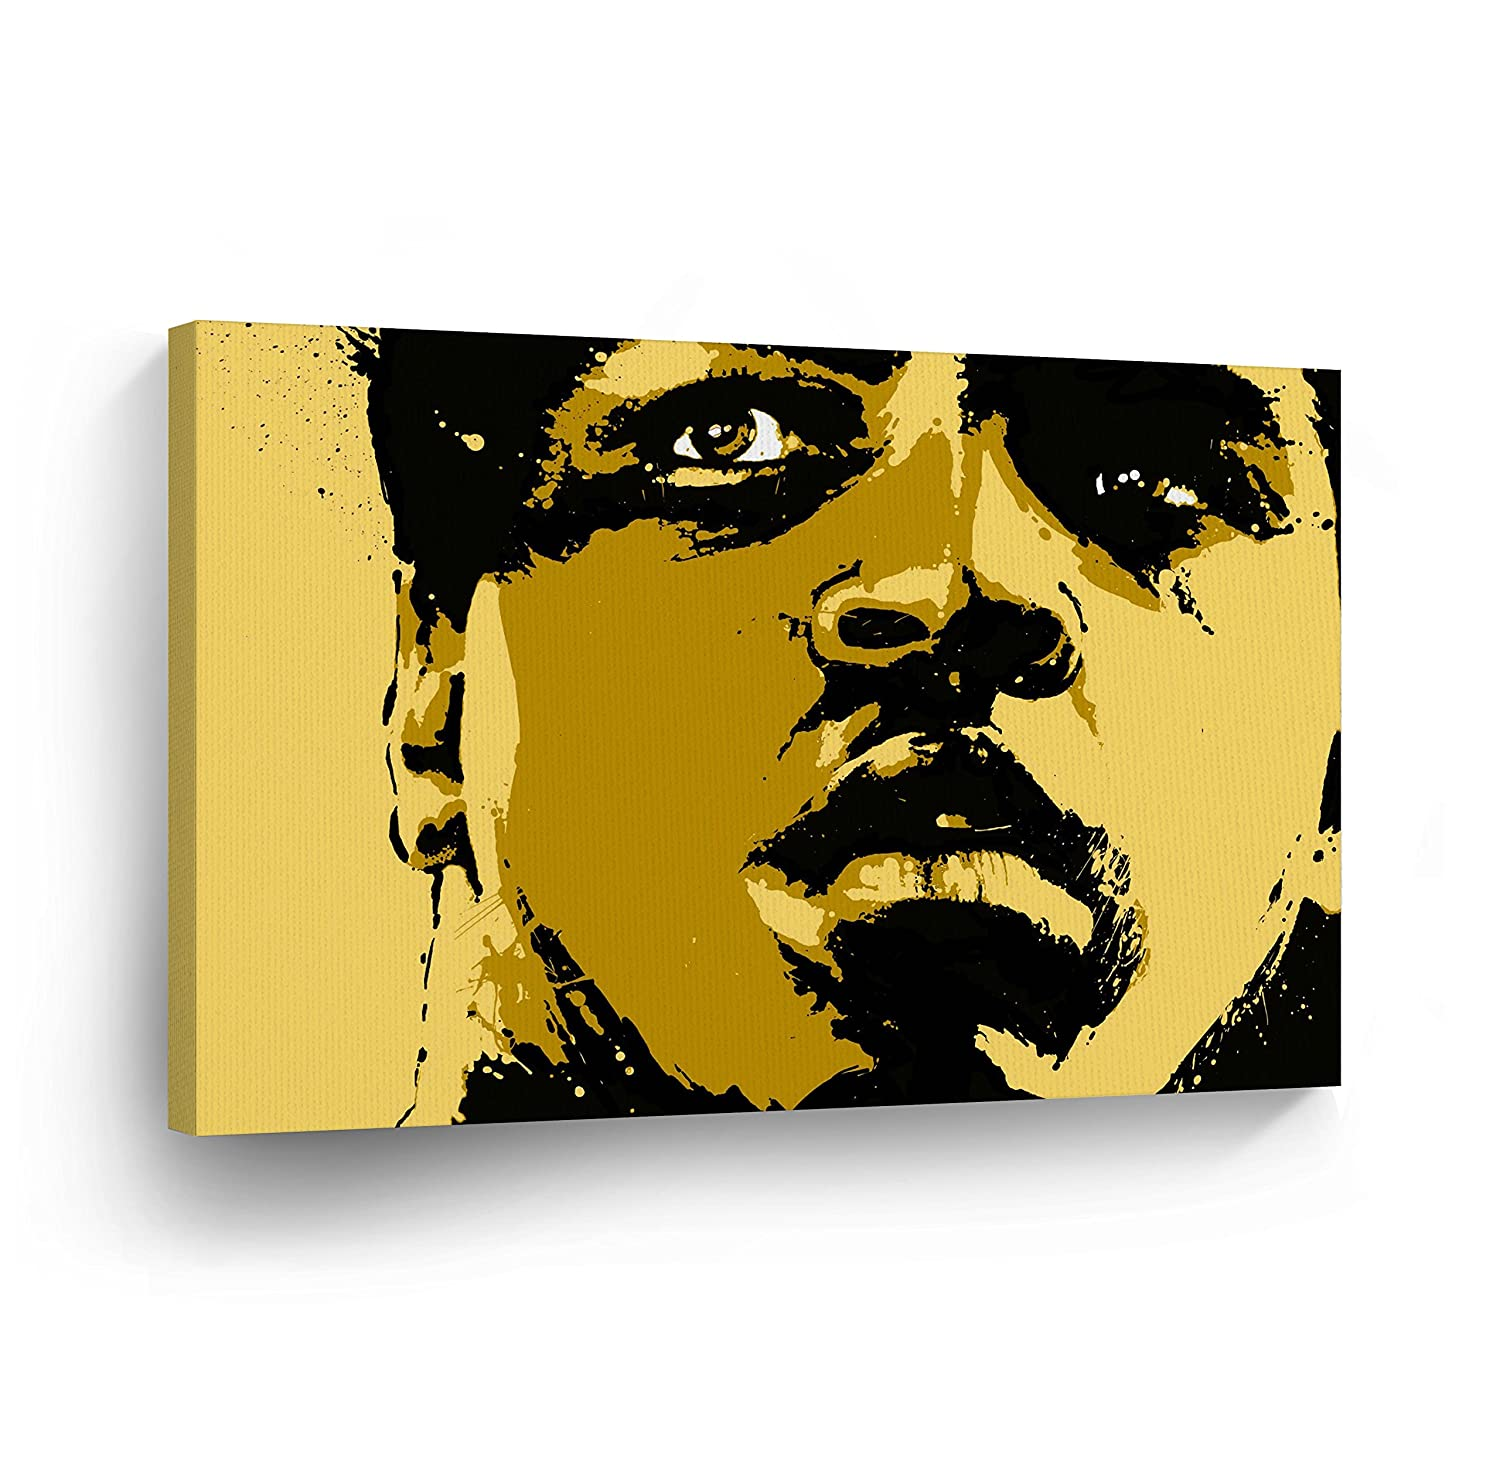 Amazon.com: Black and Yellow Colors Muhammad Ali Digital Painting ...